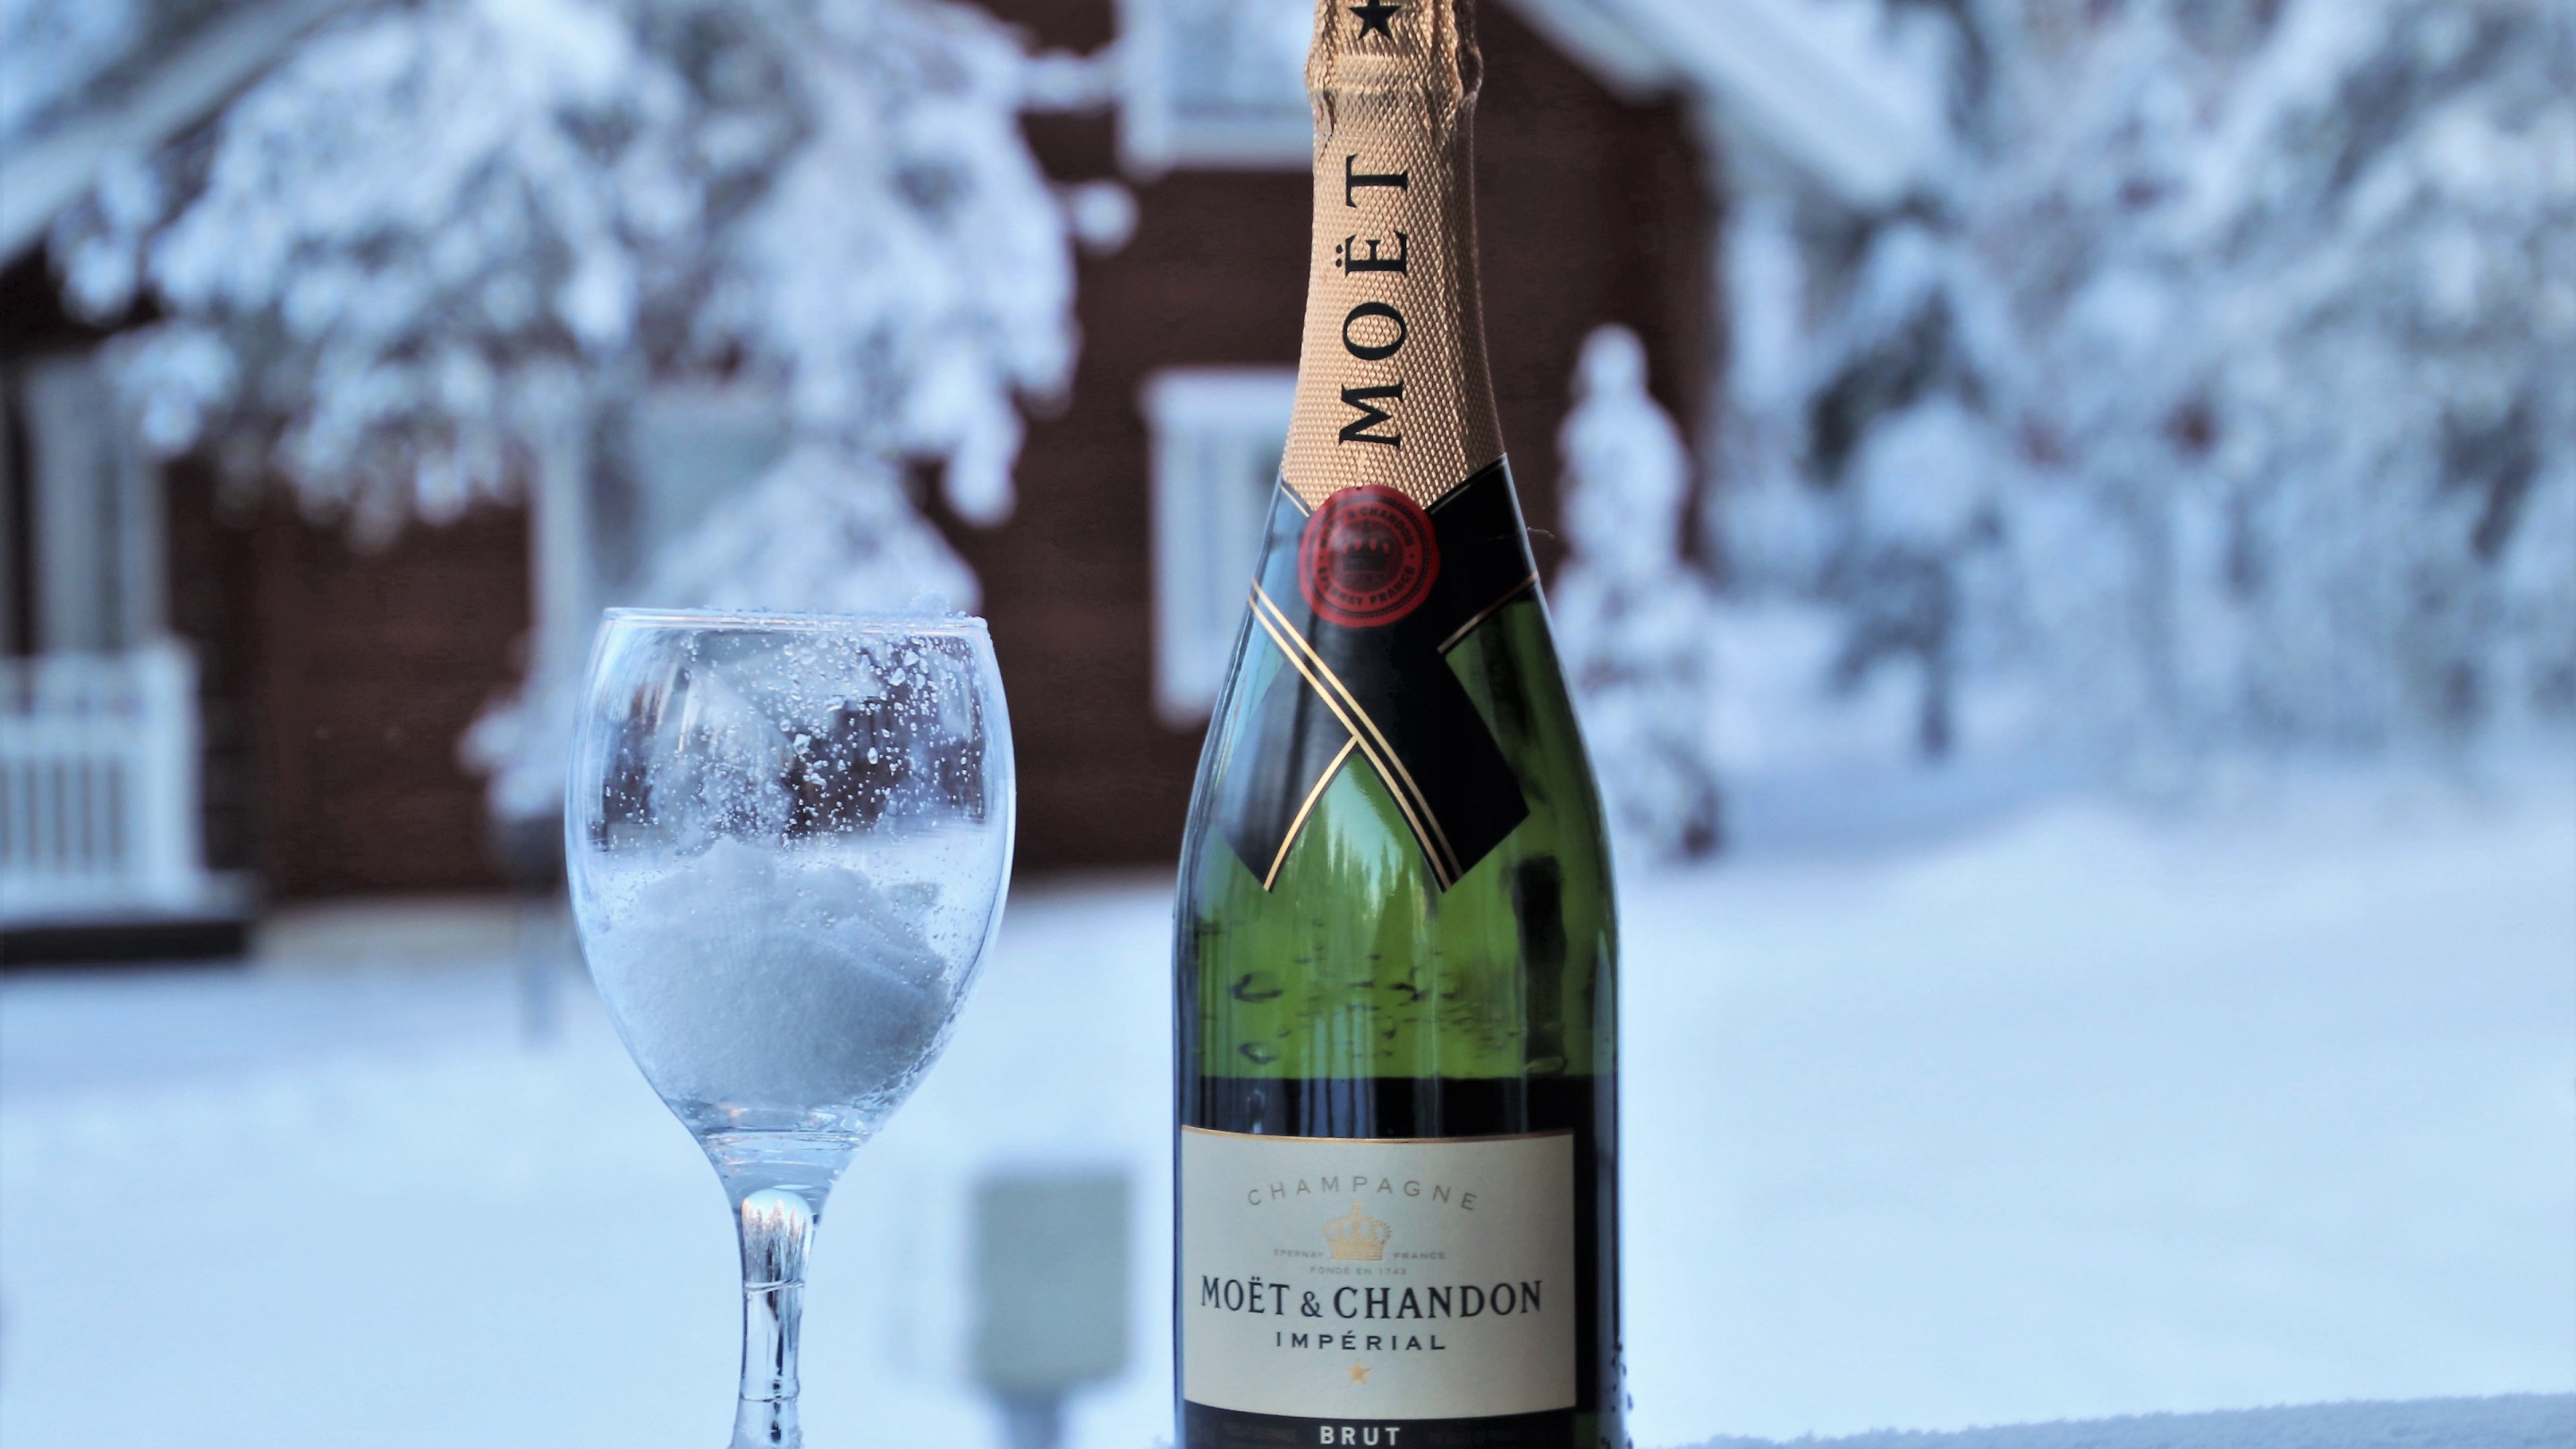 Moet champagne wallpaper 2880x1620